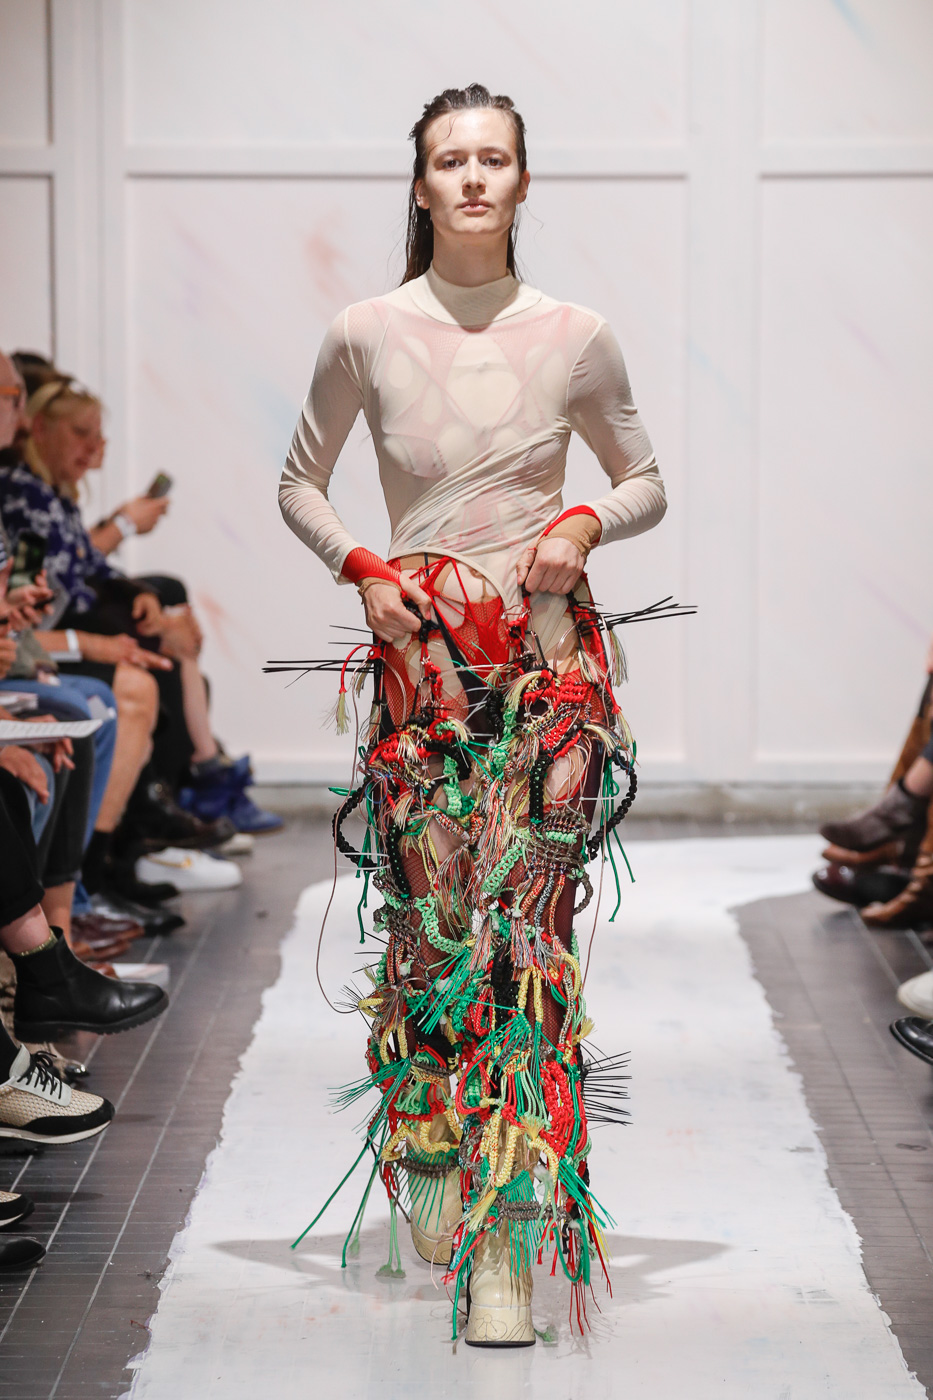 Knotty Things at KABK Graduate Show 2019